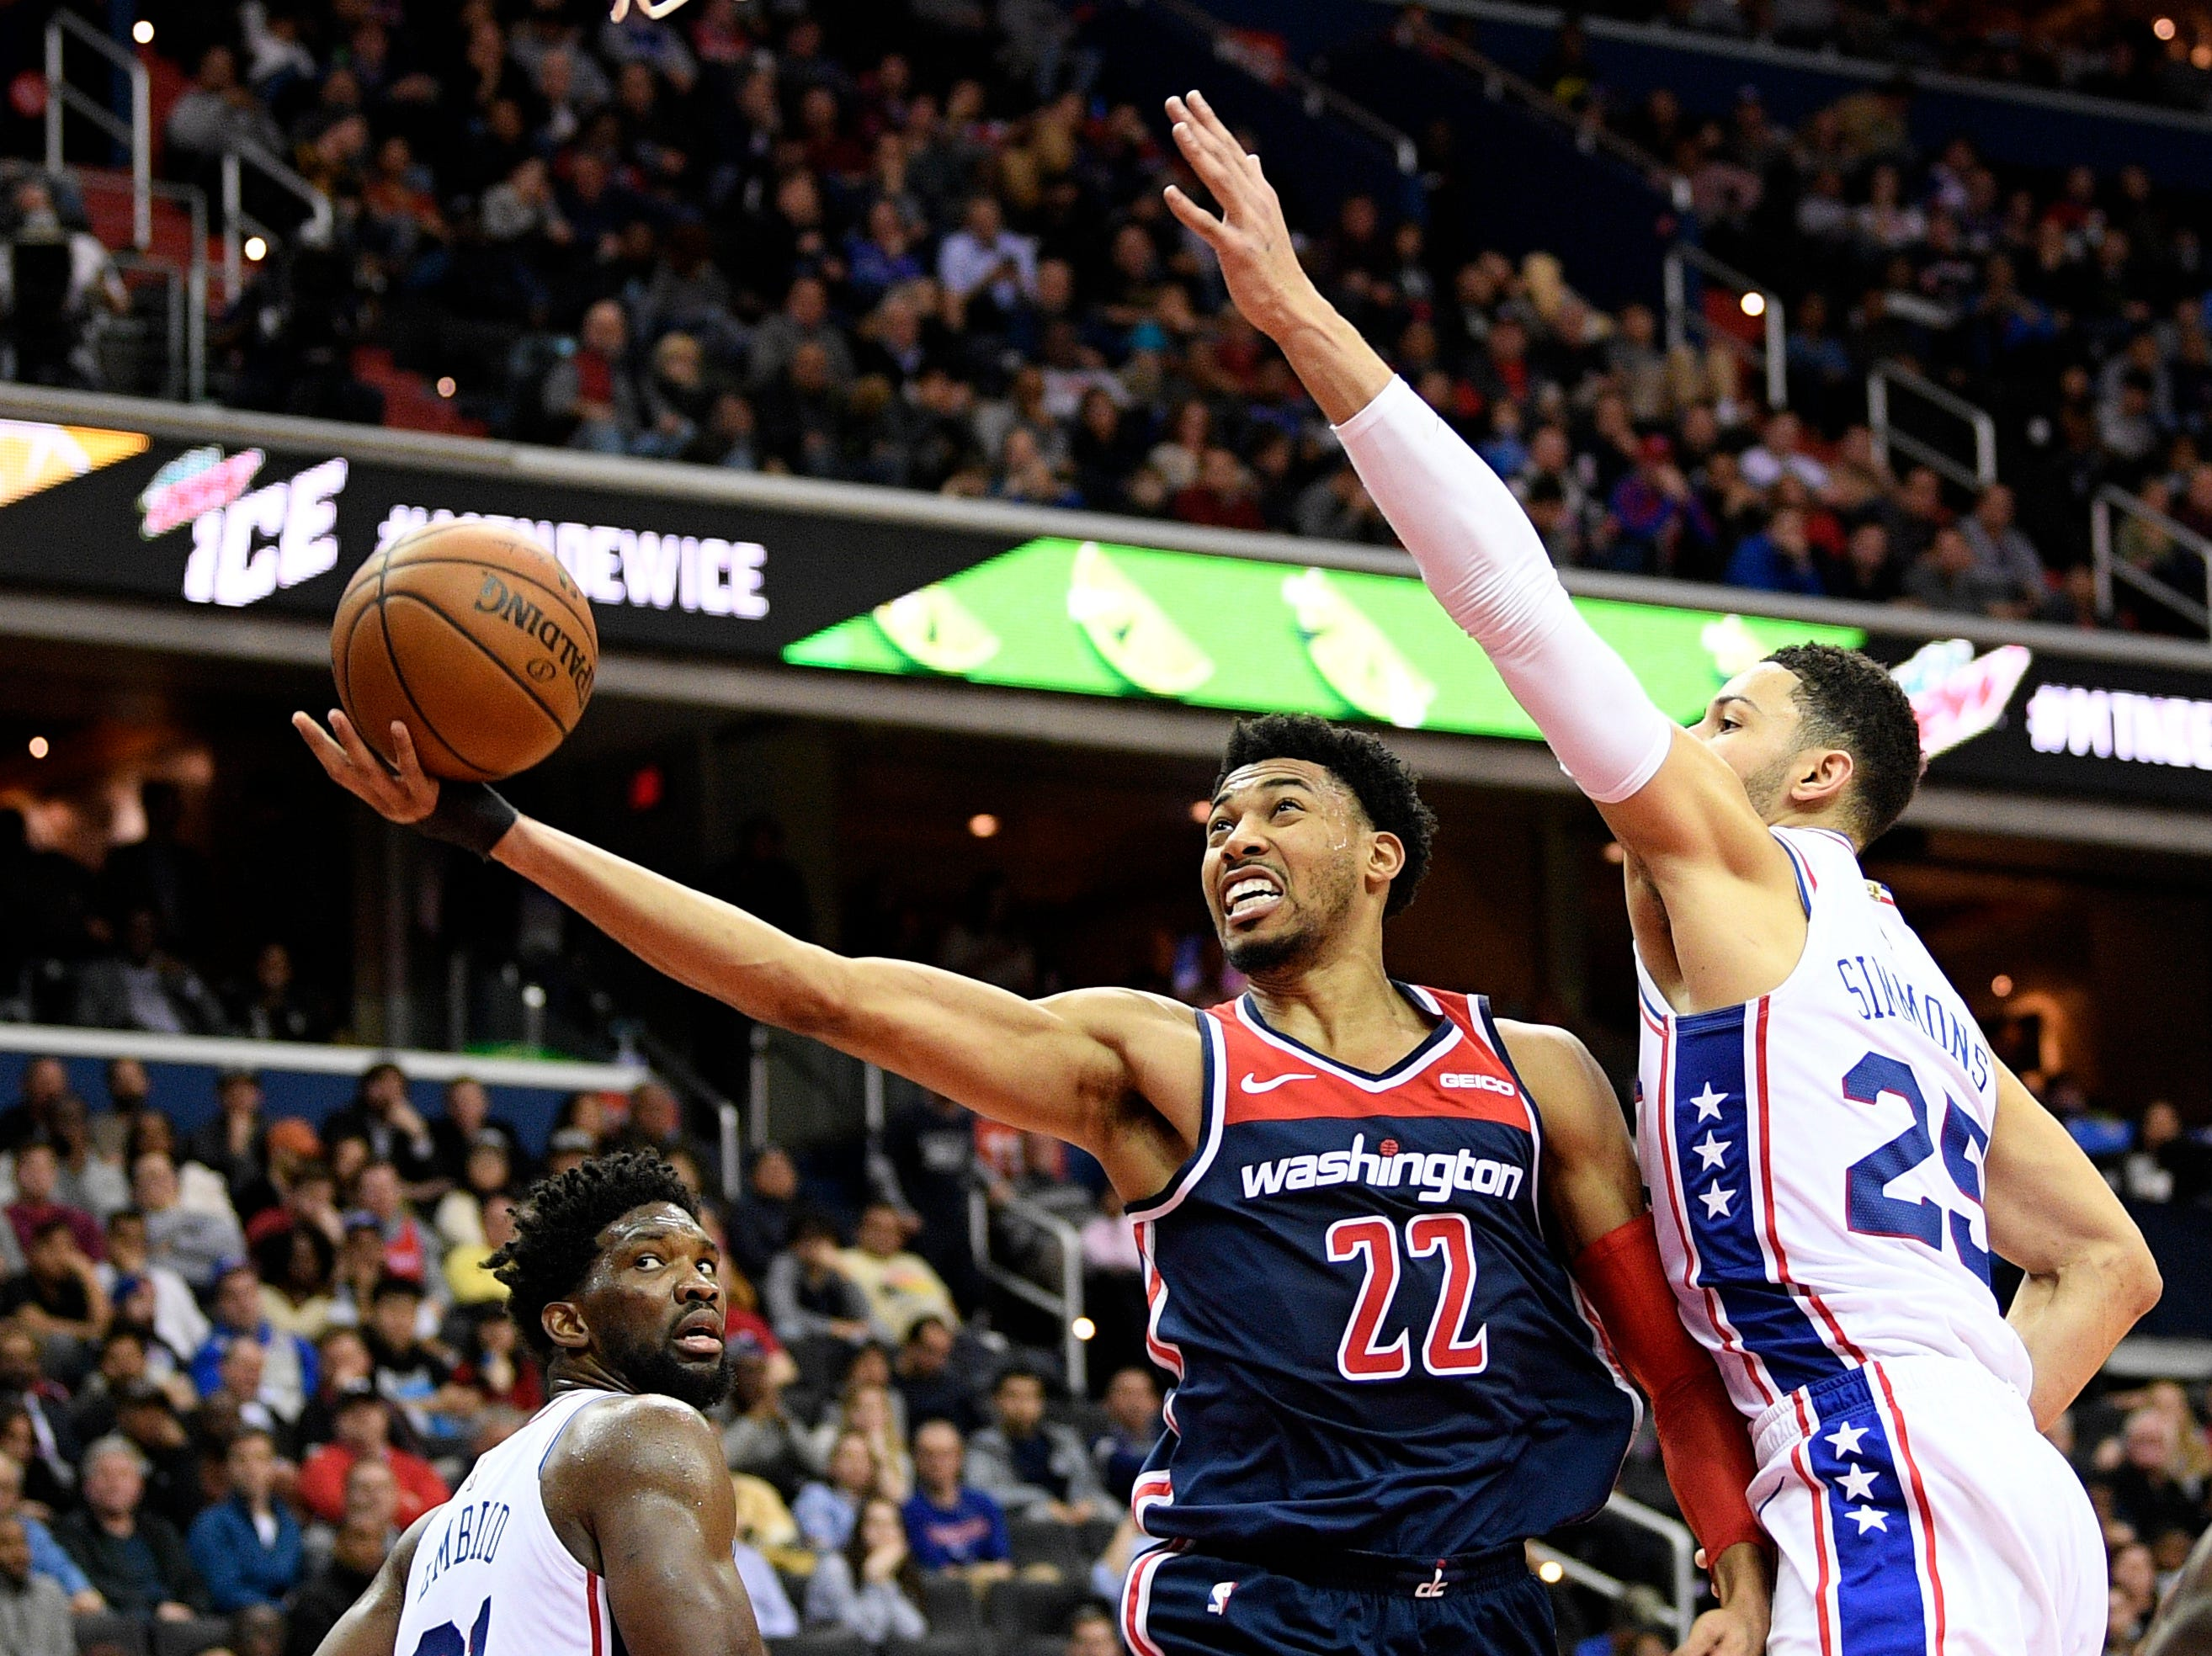 Washington Wizards forward Otto Porter Jr. (22) goes to the basket against Philadelphia 76ers guard Ben Simmons (25) and center Joel Embiid, left, during the second half of an NBA basketball game, Wednesday, Jan. 9, 2019, in Washington. The Wizards won 123-106. (AP Photo/Nick Wass)